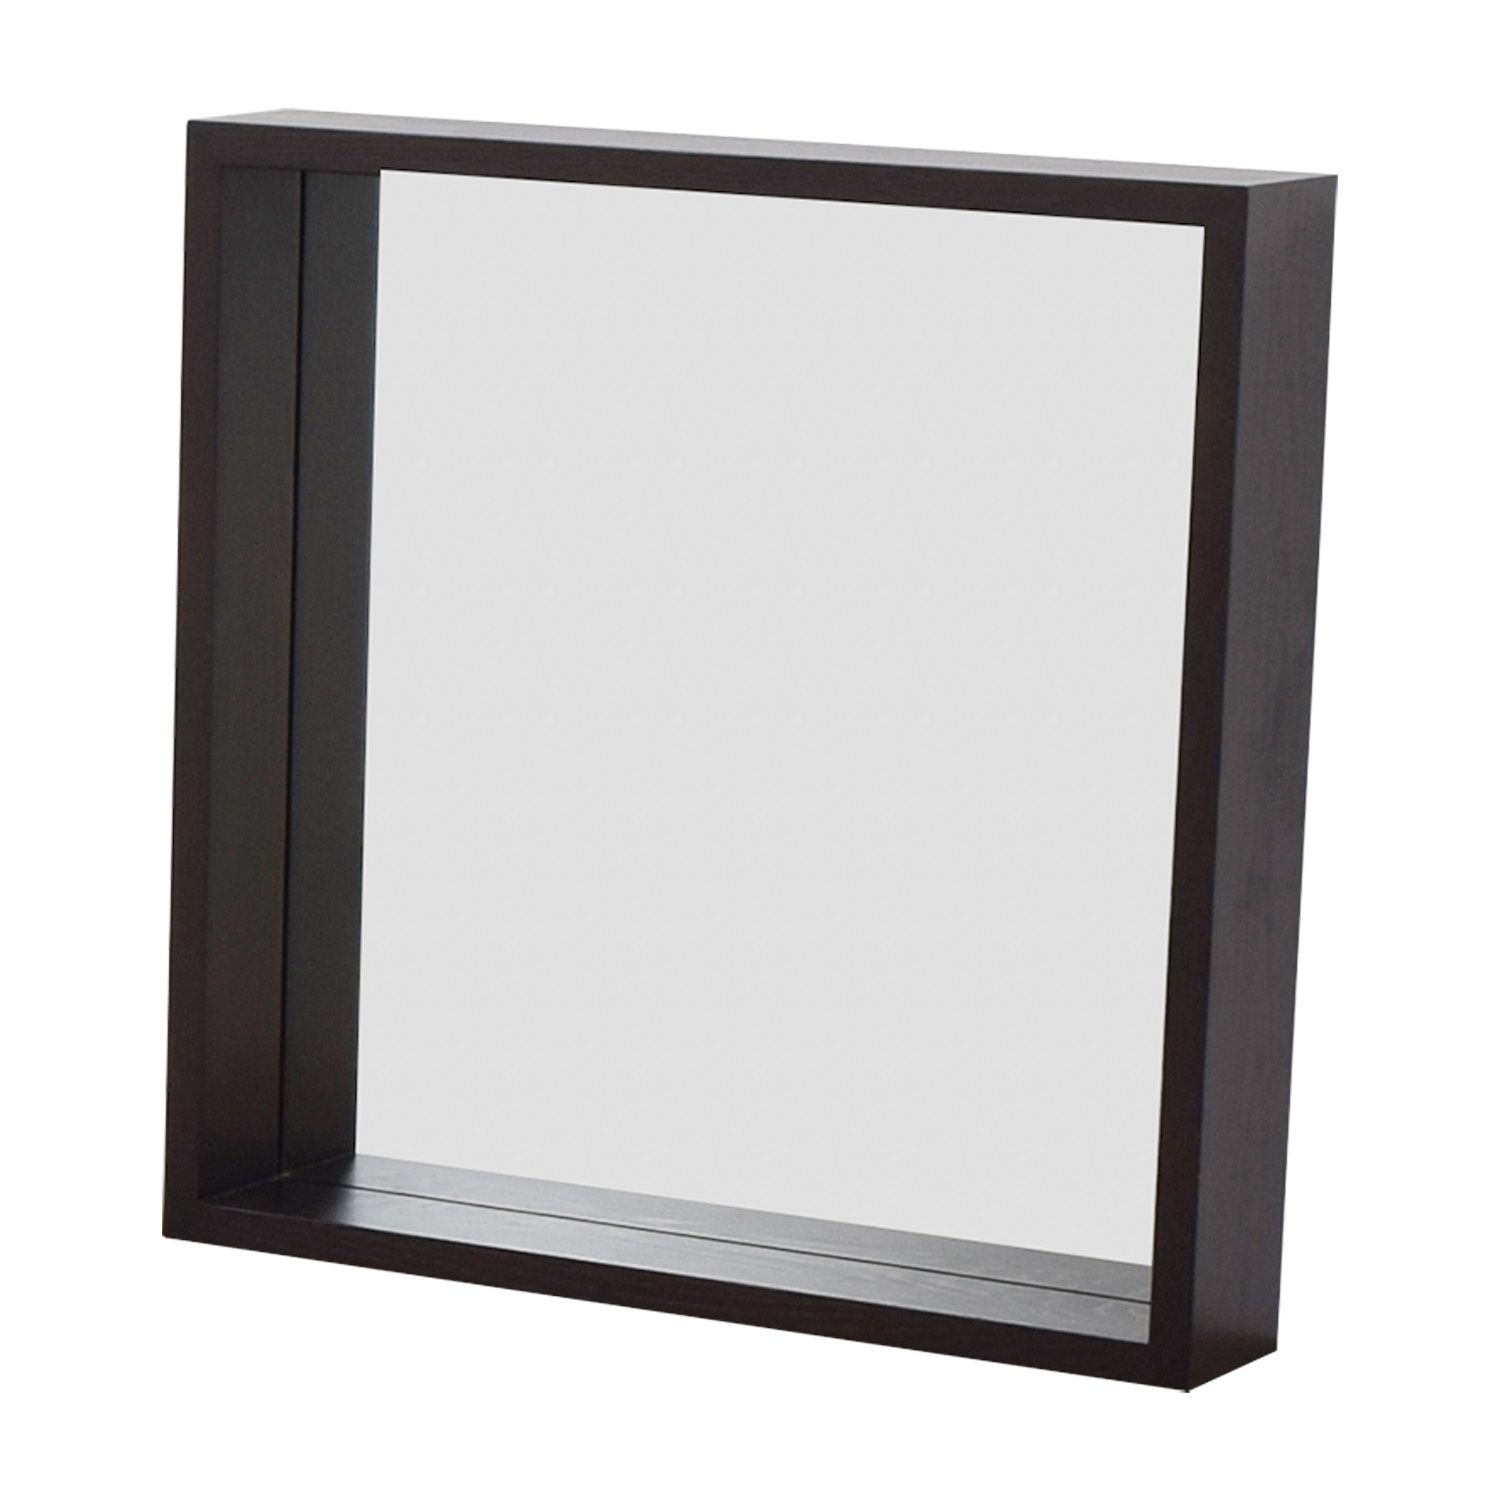 West Elm West Elm Wooden Framed Mirror for sale